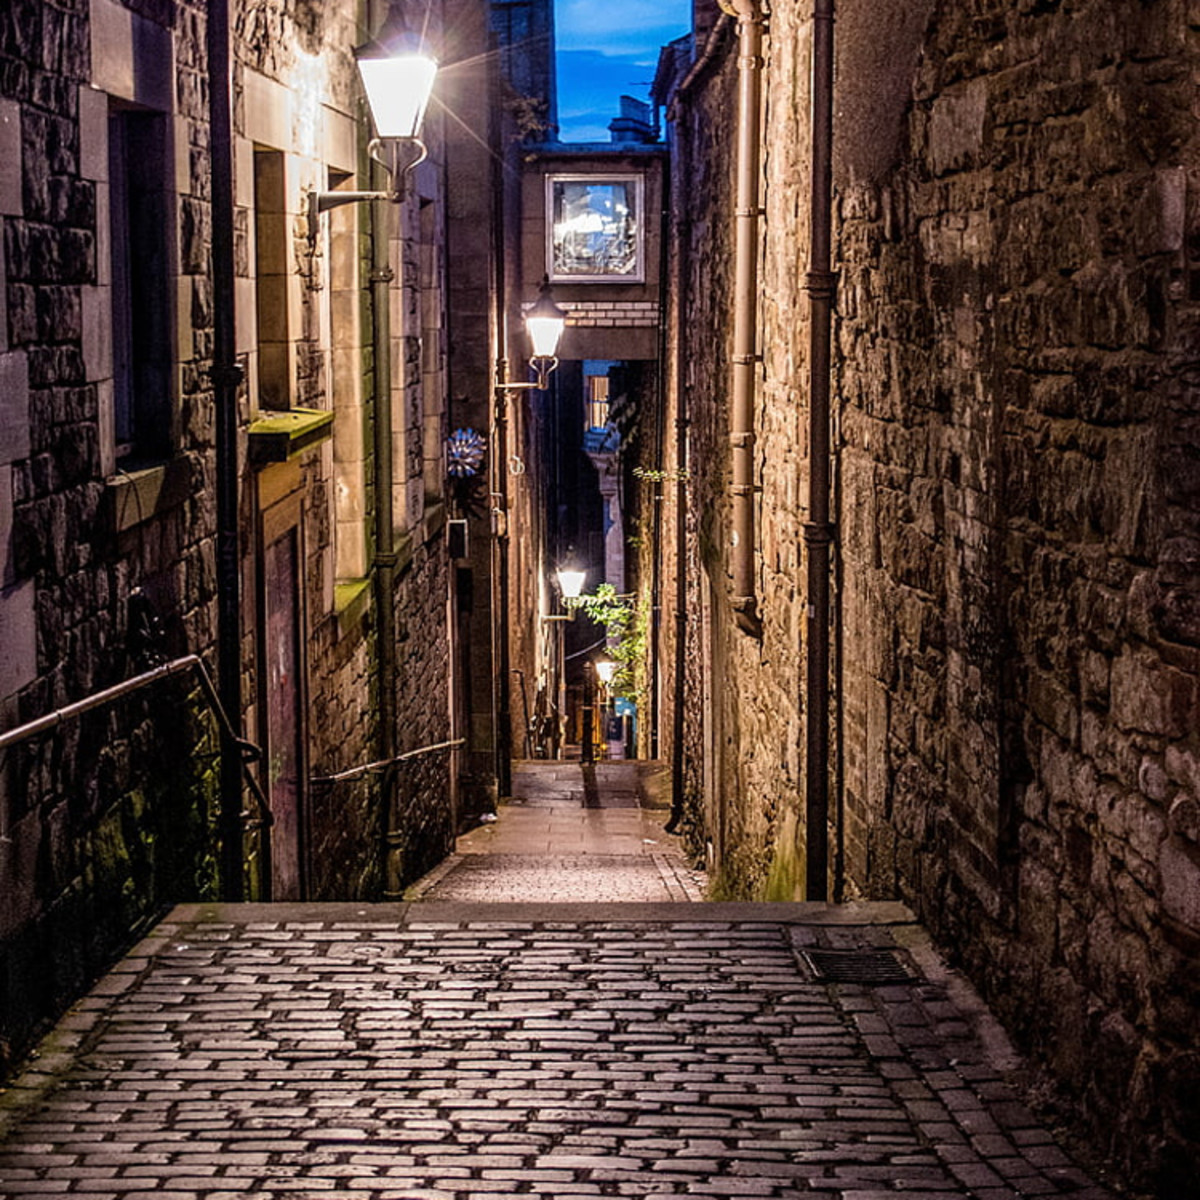 Regarded as one of the world's most haunted cities, Edinburgh's old town section has plenty of stories to tell.